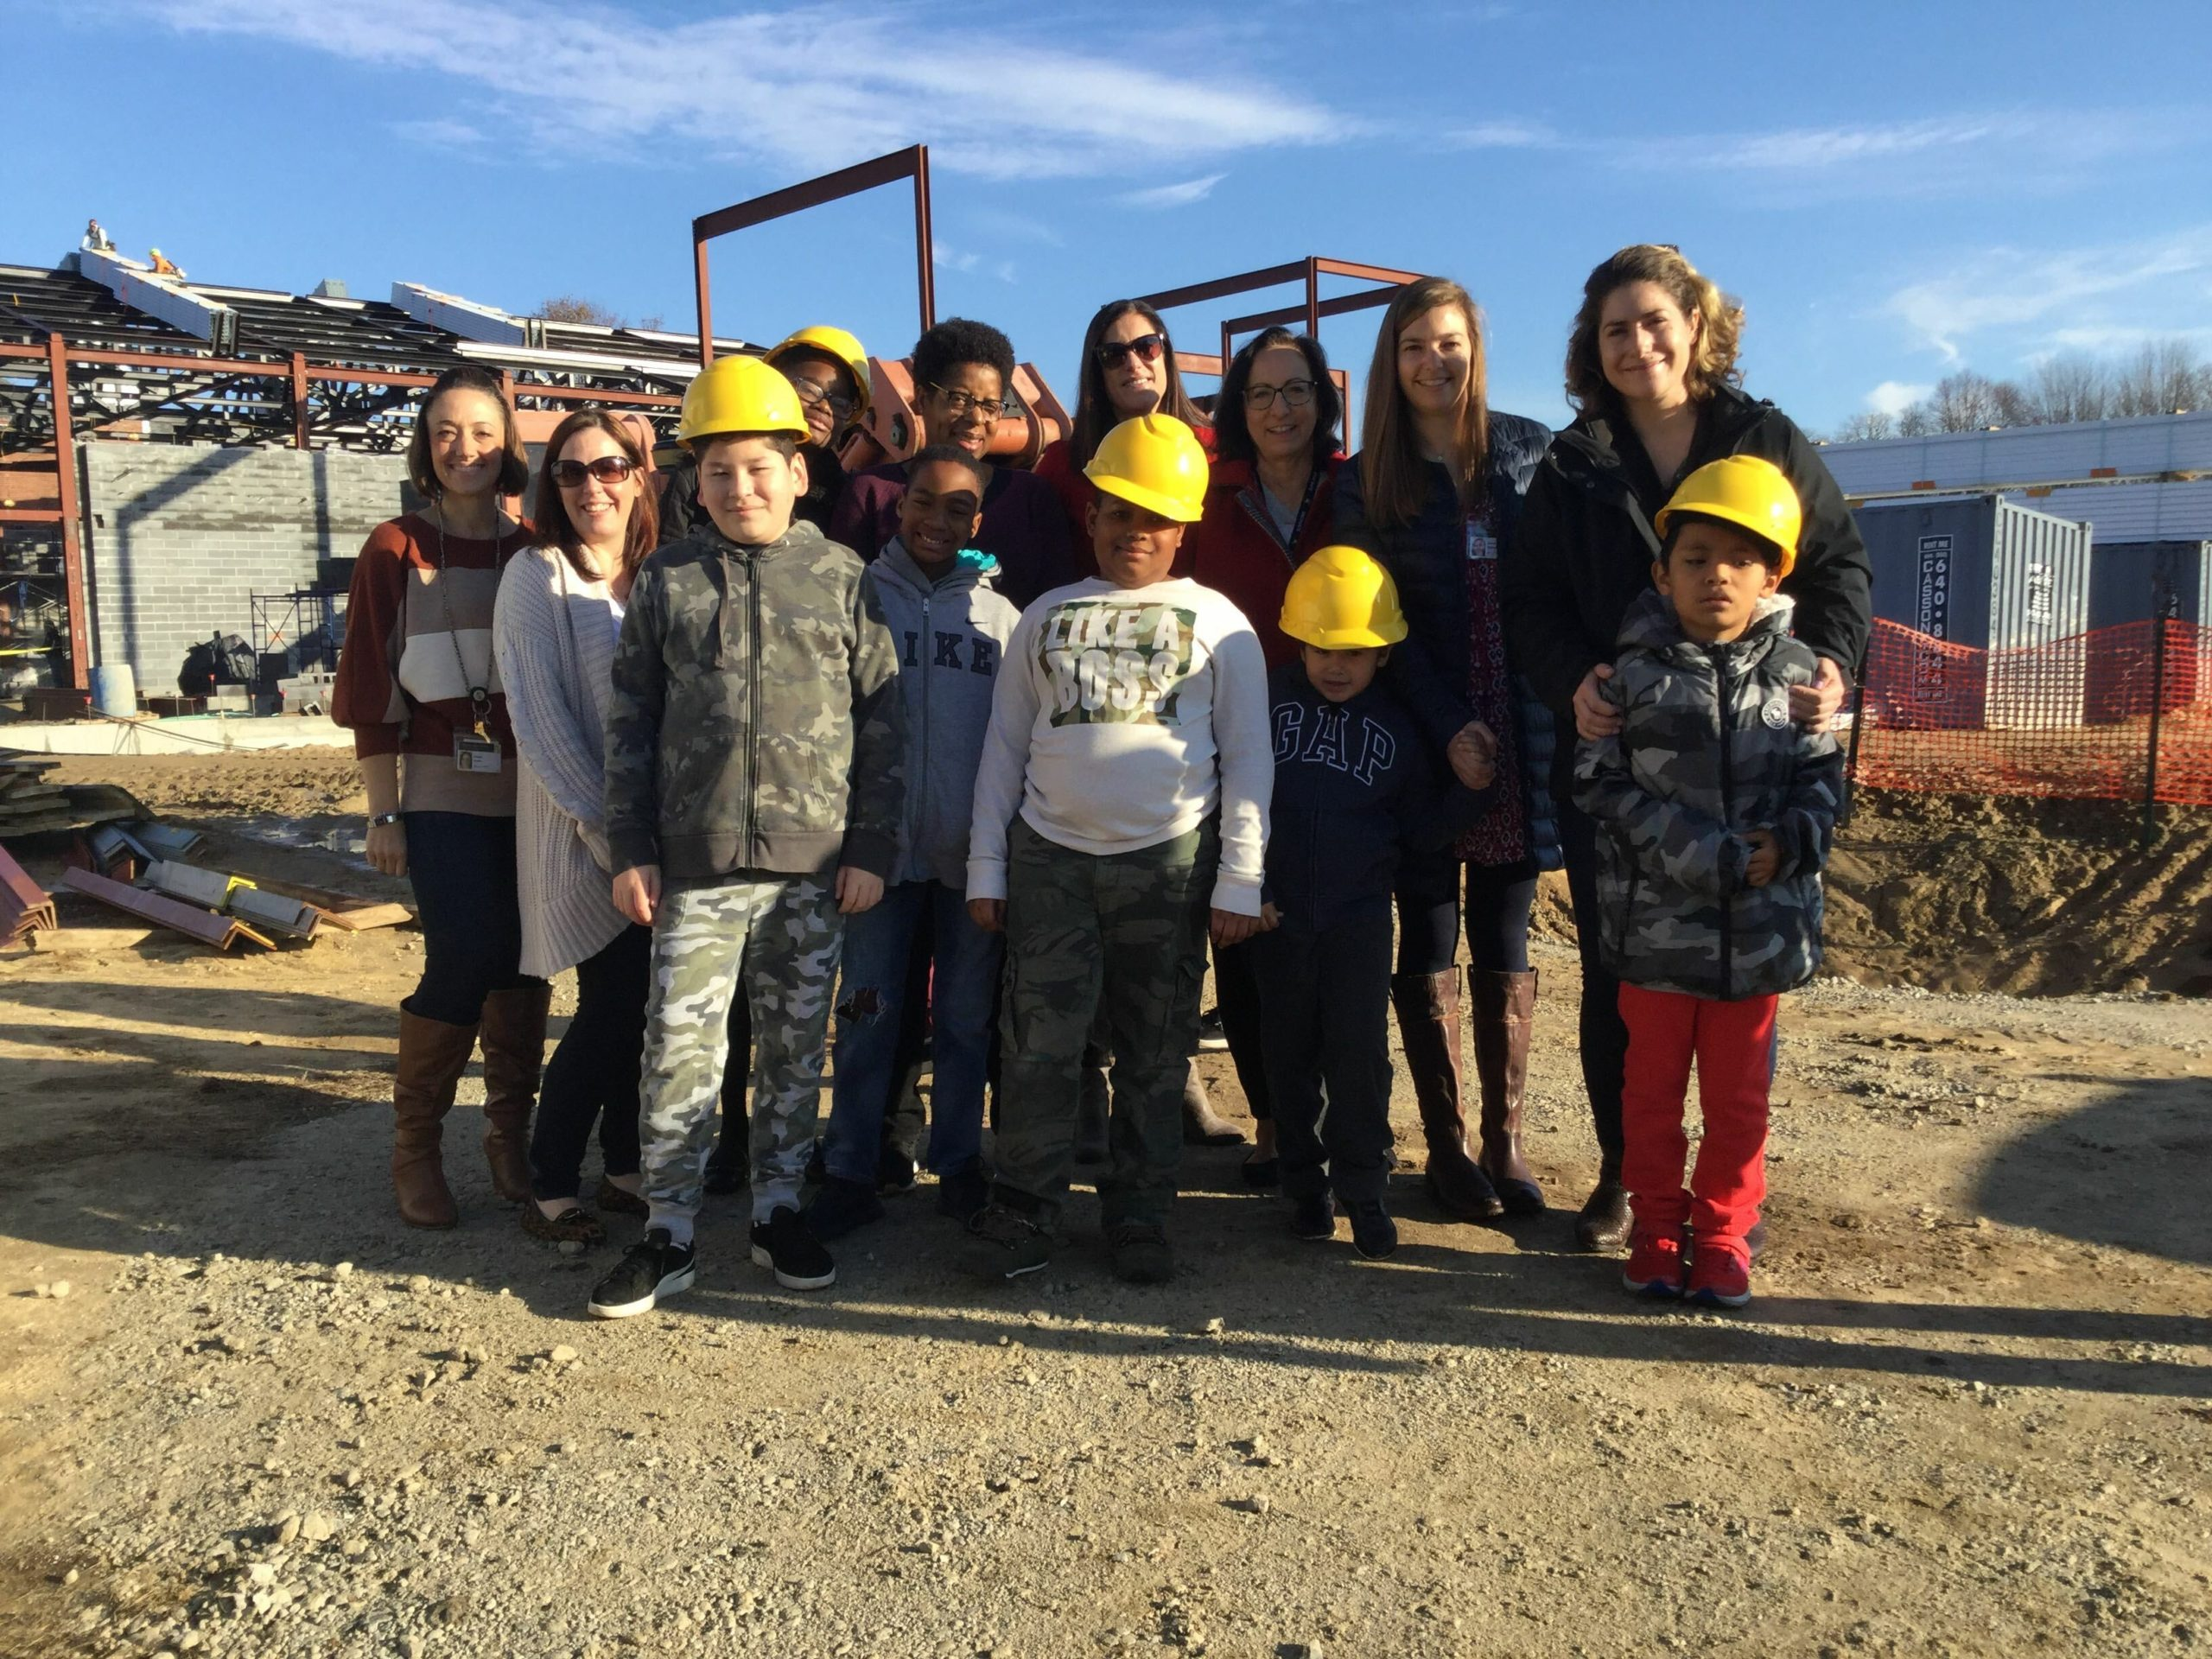 Dr. Angela Austin, Bridgehampton School District director of pupil personnel services and ENL, left, with staff and students of the Construction Student Ambassador Program.